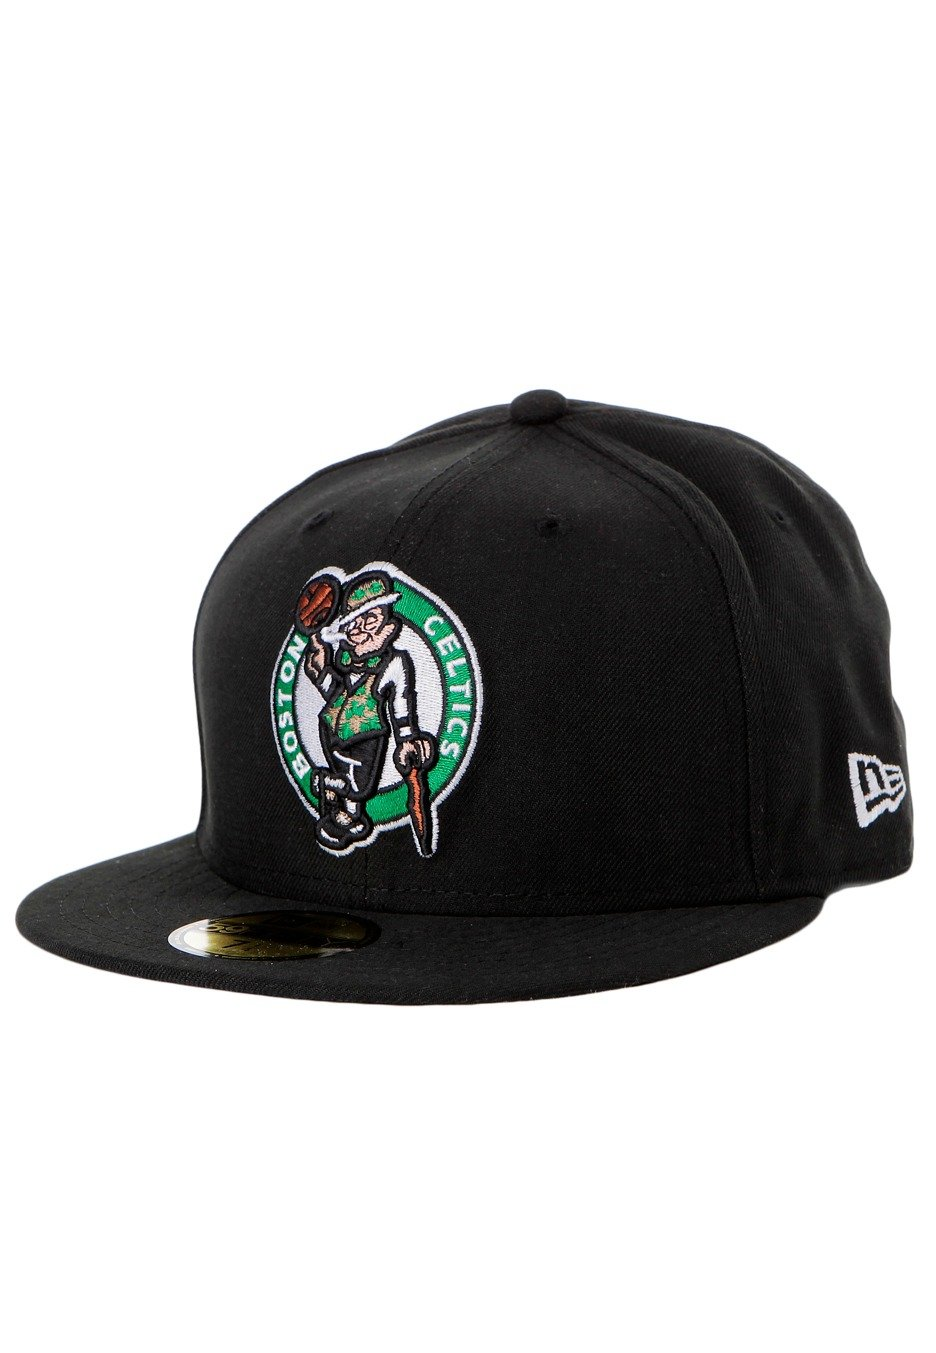 New Era - Seasonal Basic Boston Celtics - Cap - Streetwear Shop -  Impericon.com Worldwide dae7aebf710